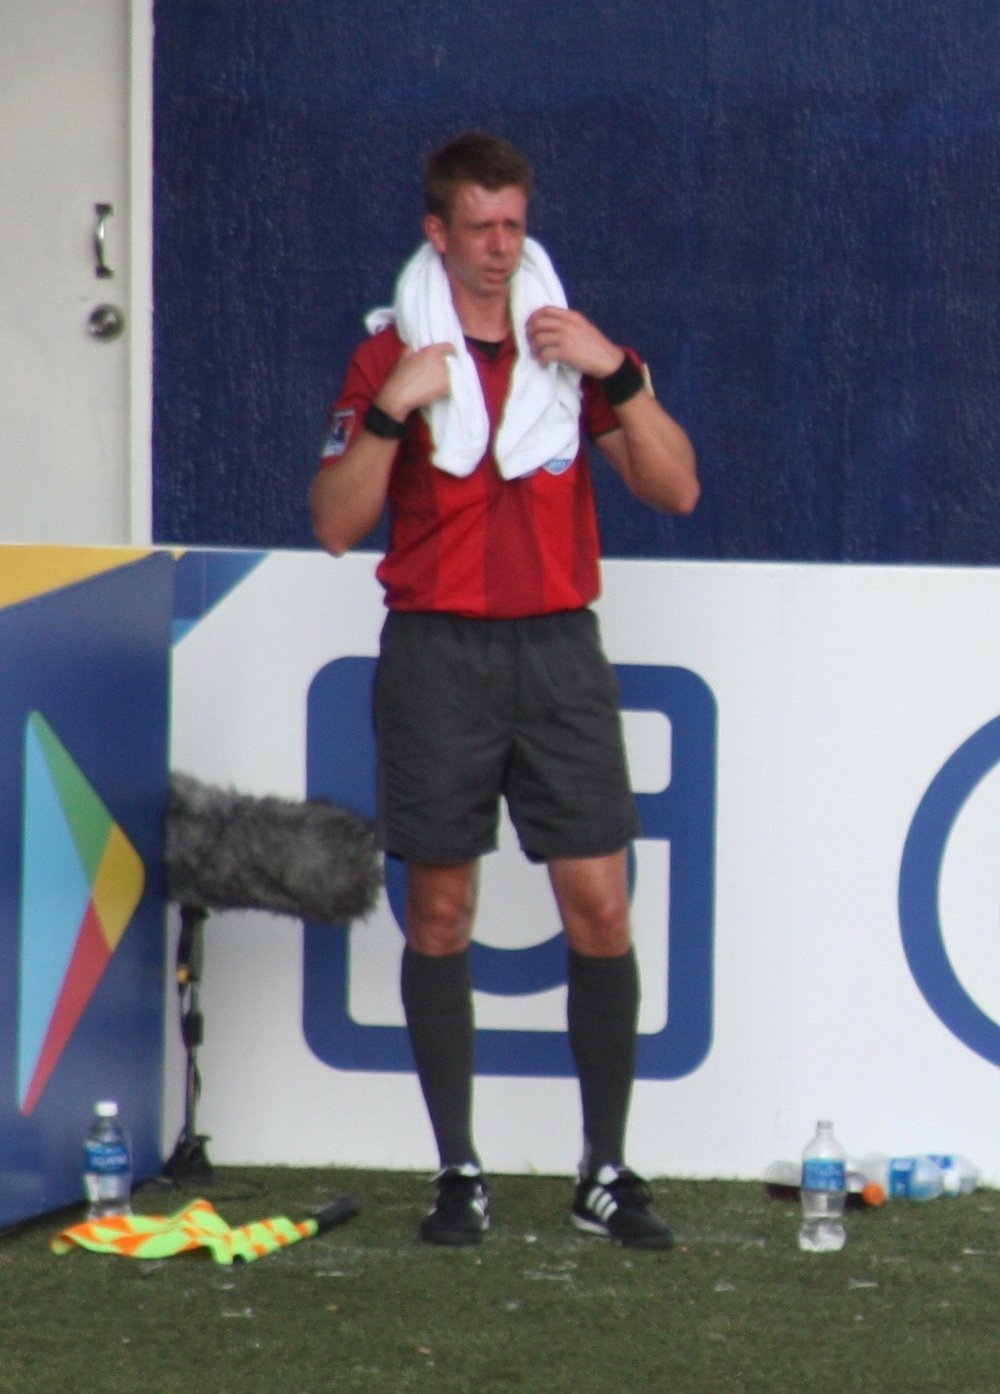 Richard Gamache during the mandatory water break for a 3:00pm match in Panama.  90+ degrees, plus humidity.